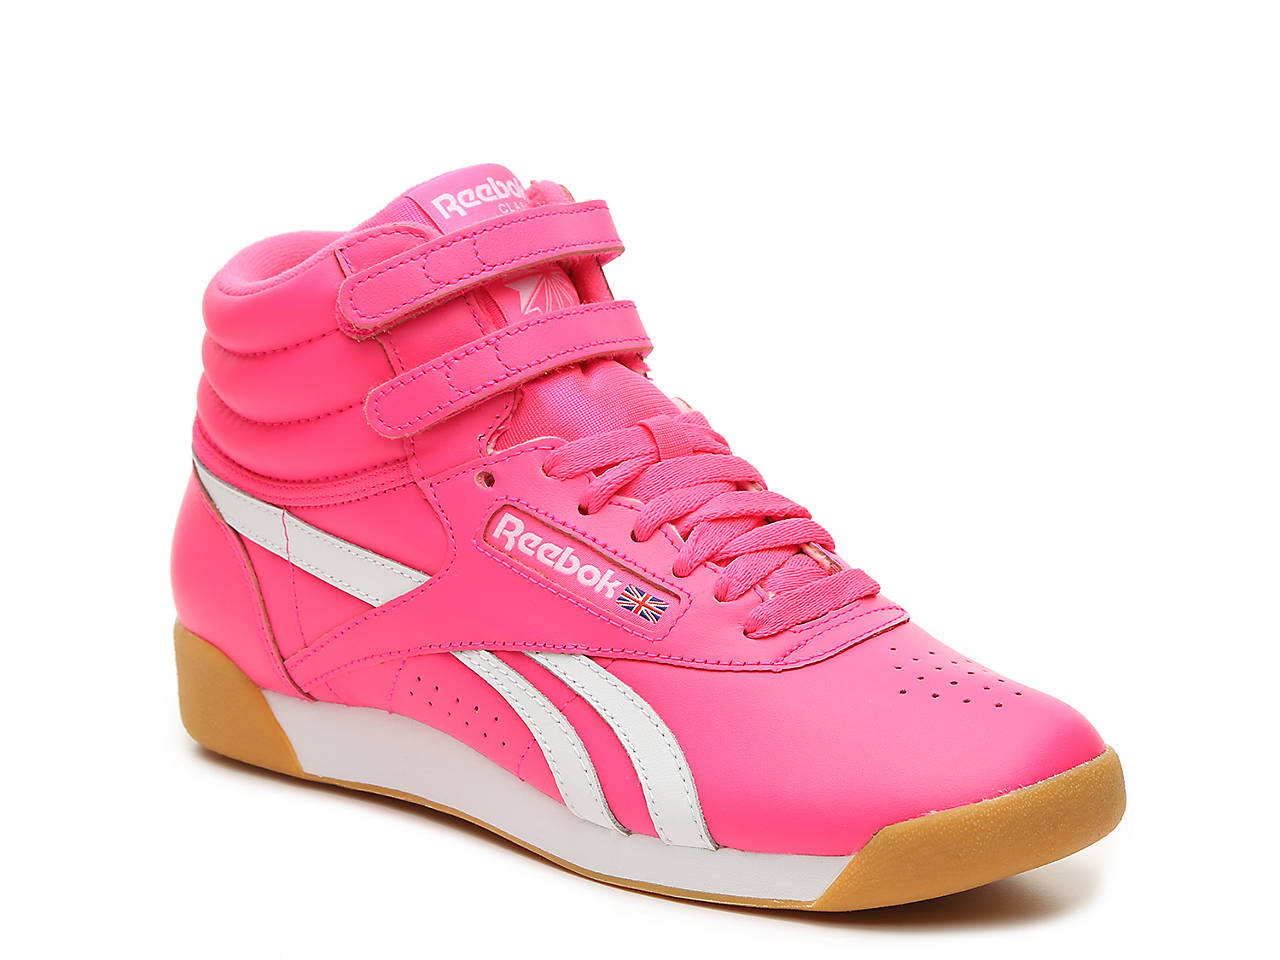 9b1d924f8acb0 Reebok Classic High-Top Sneaker - Women s Women s Shoes